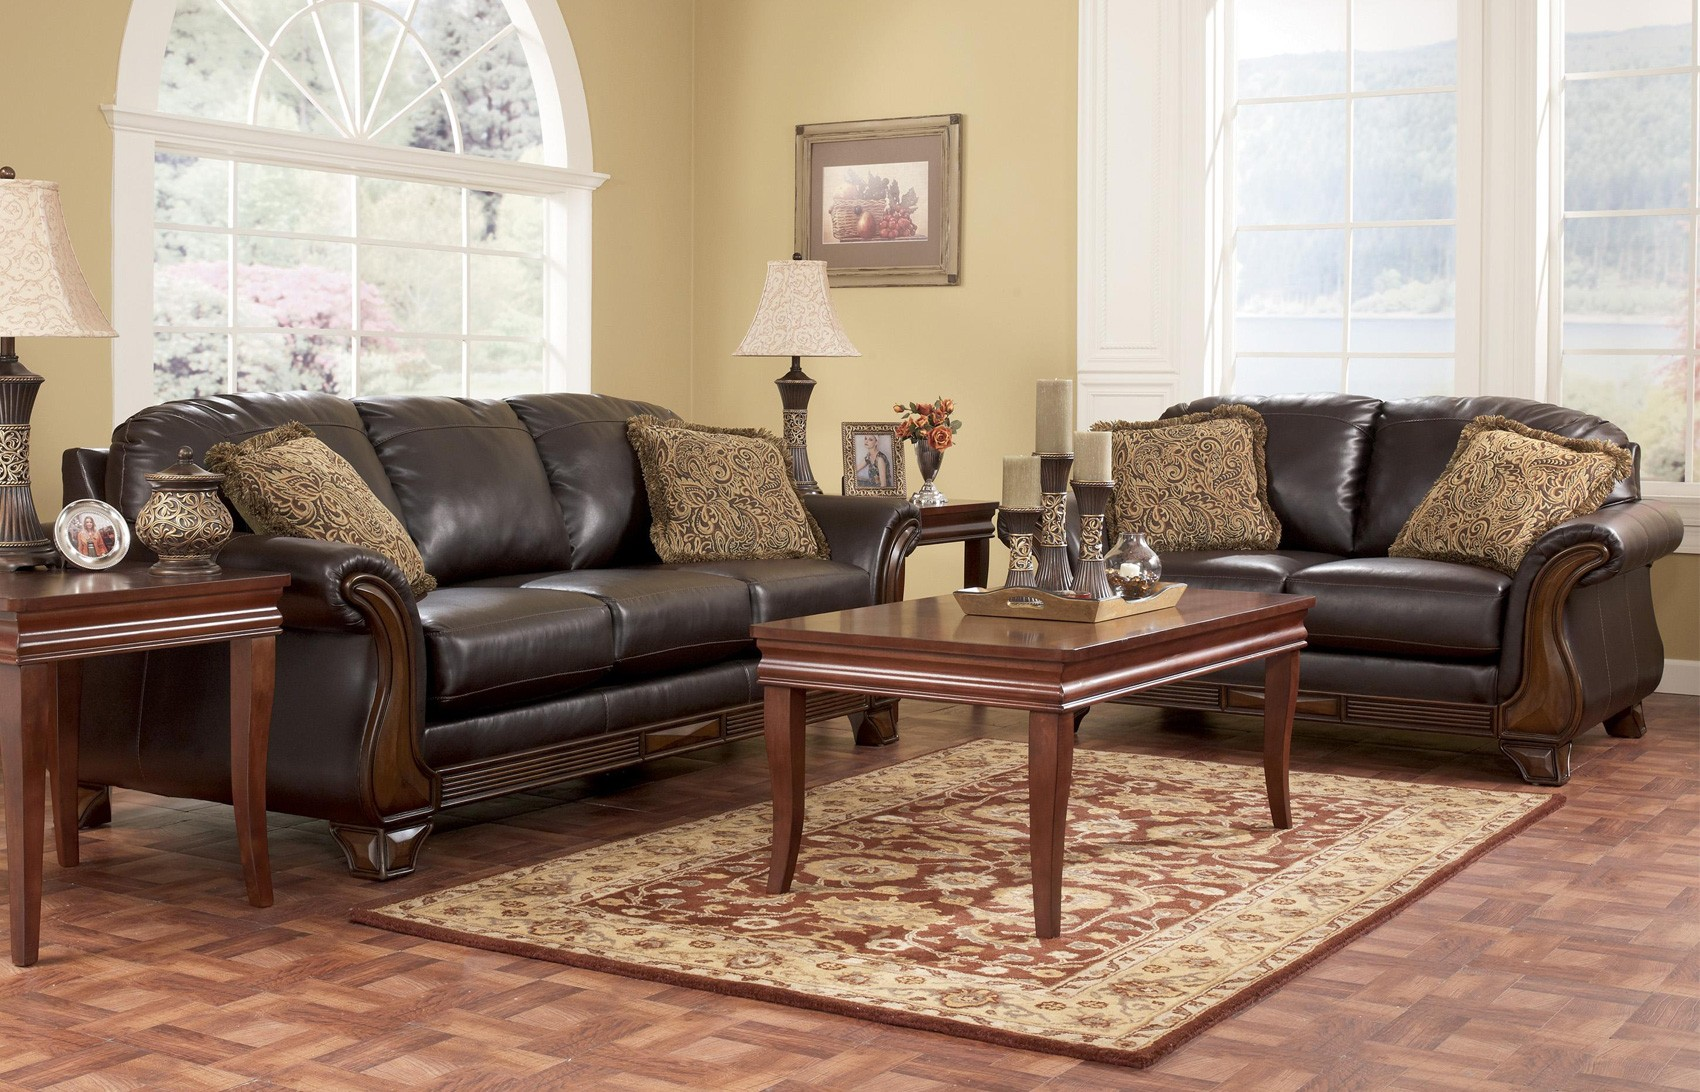 living room set ashley furniture furniture living room set for 999 21261